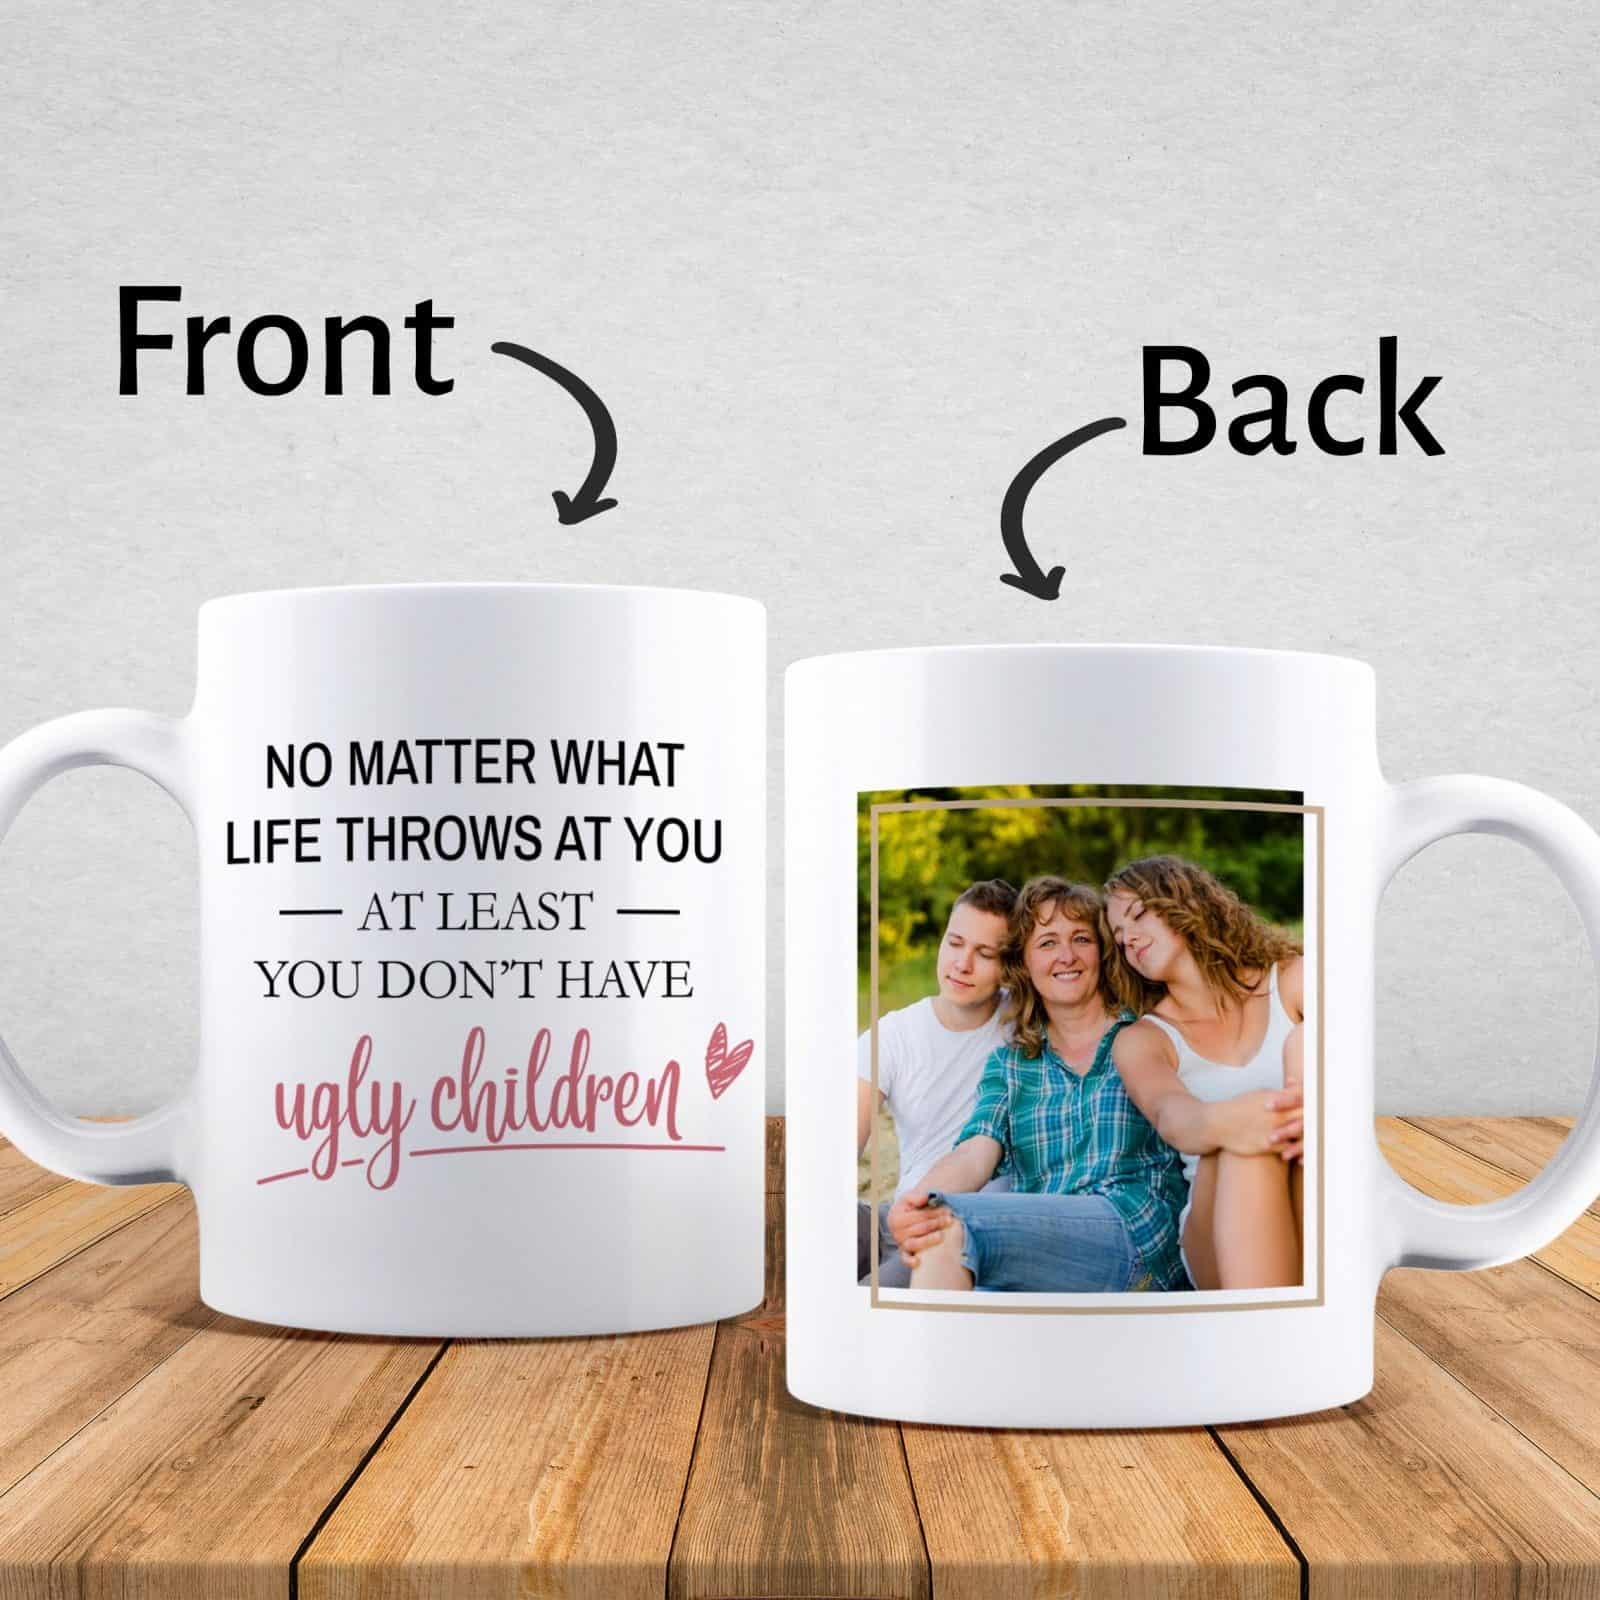 At Least You Don't Have Ugly Children Photo Mug